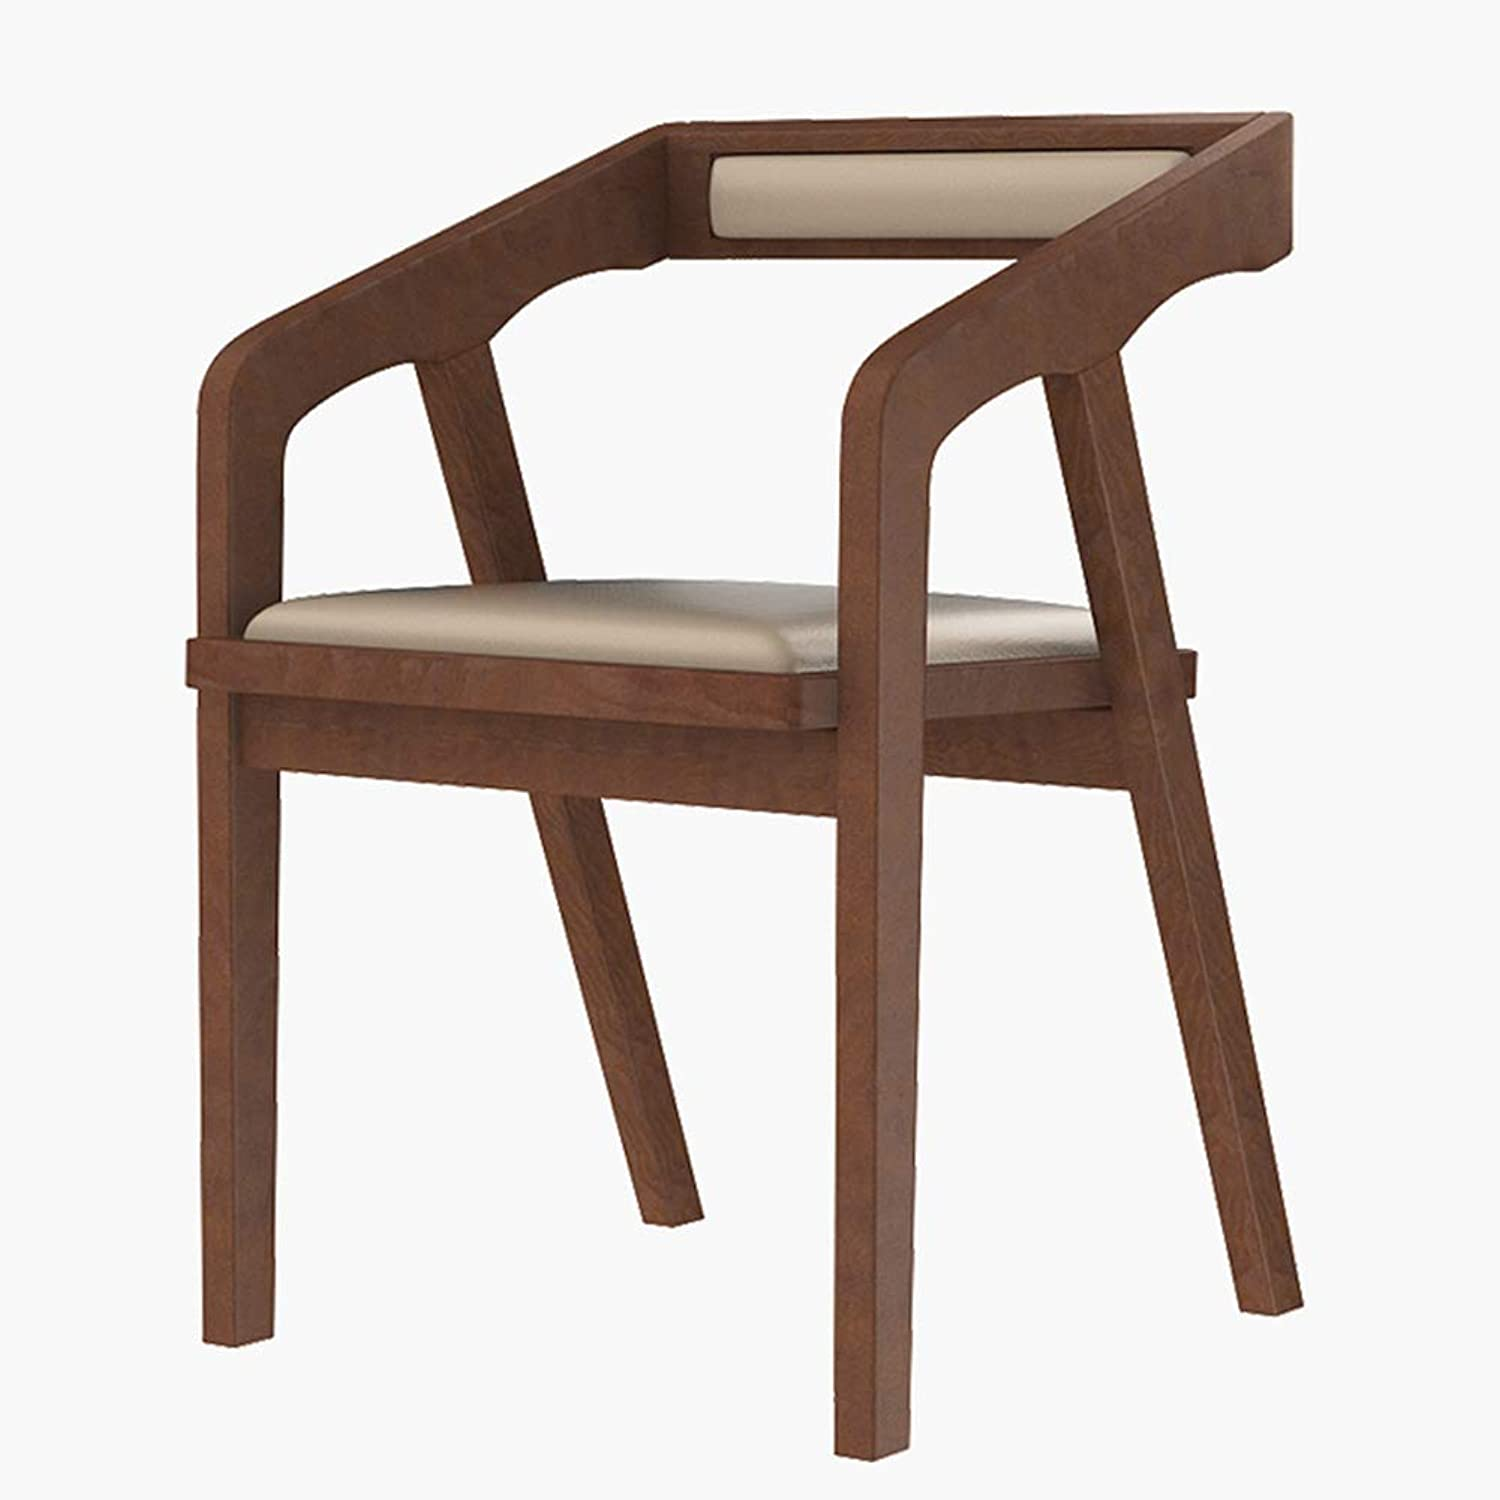 CAIJUN Chair with Backrest Handrail Design Assembly Solid Wood Frame Multipurpose Dining Bar Leisure Simple, 4 colors (color   Brown, Size   46x43x75cm)